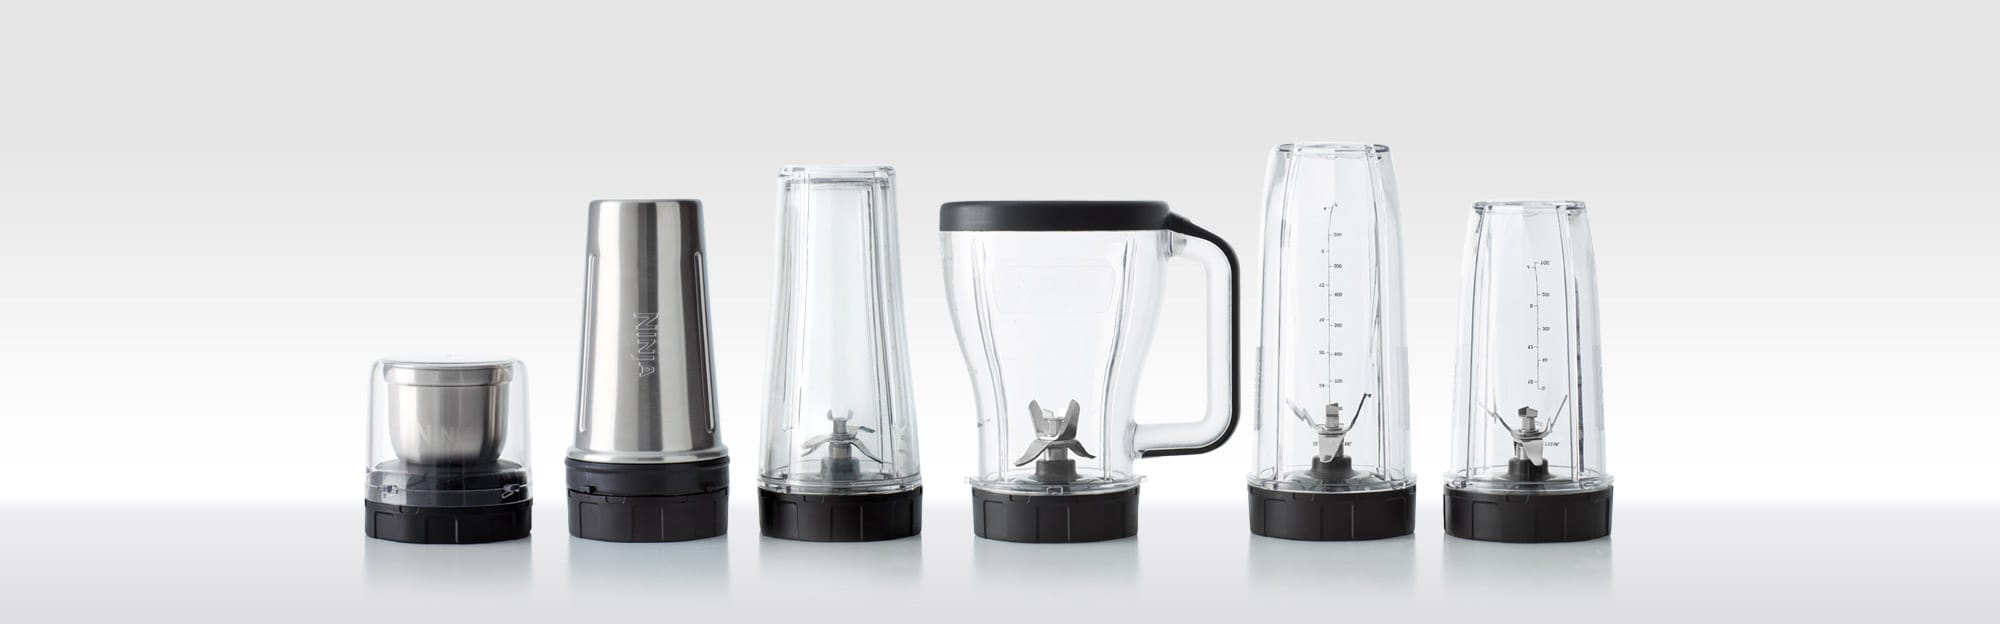 Nutri Ninja® BL490 Auto‑iQ Blenders - Accessories Collection